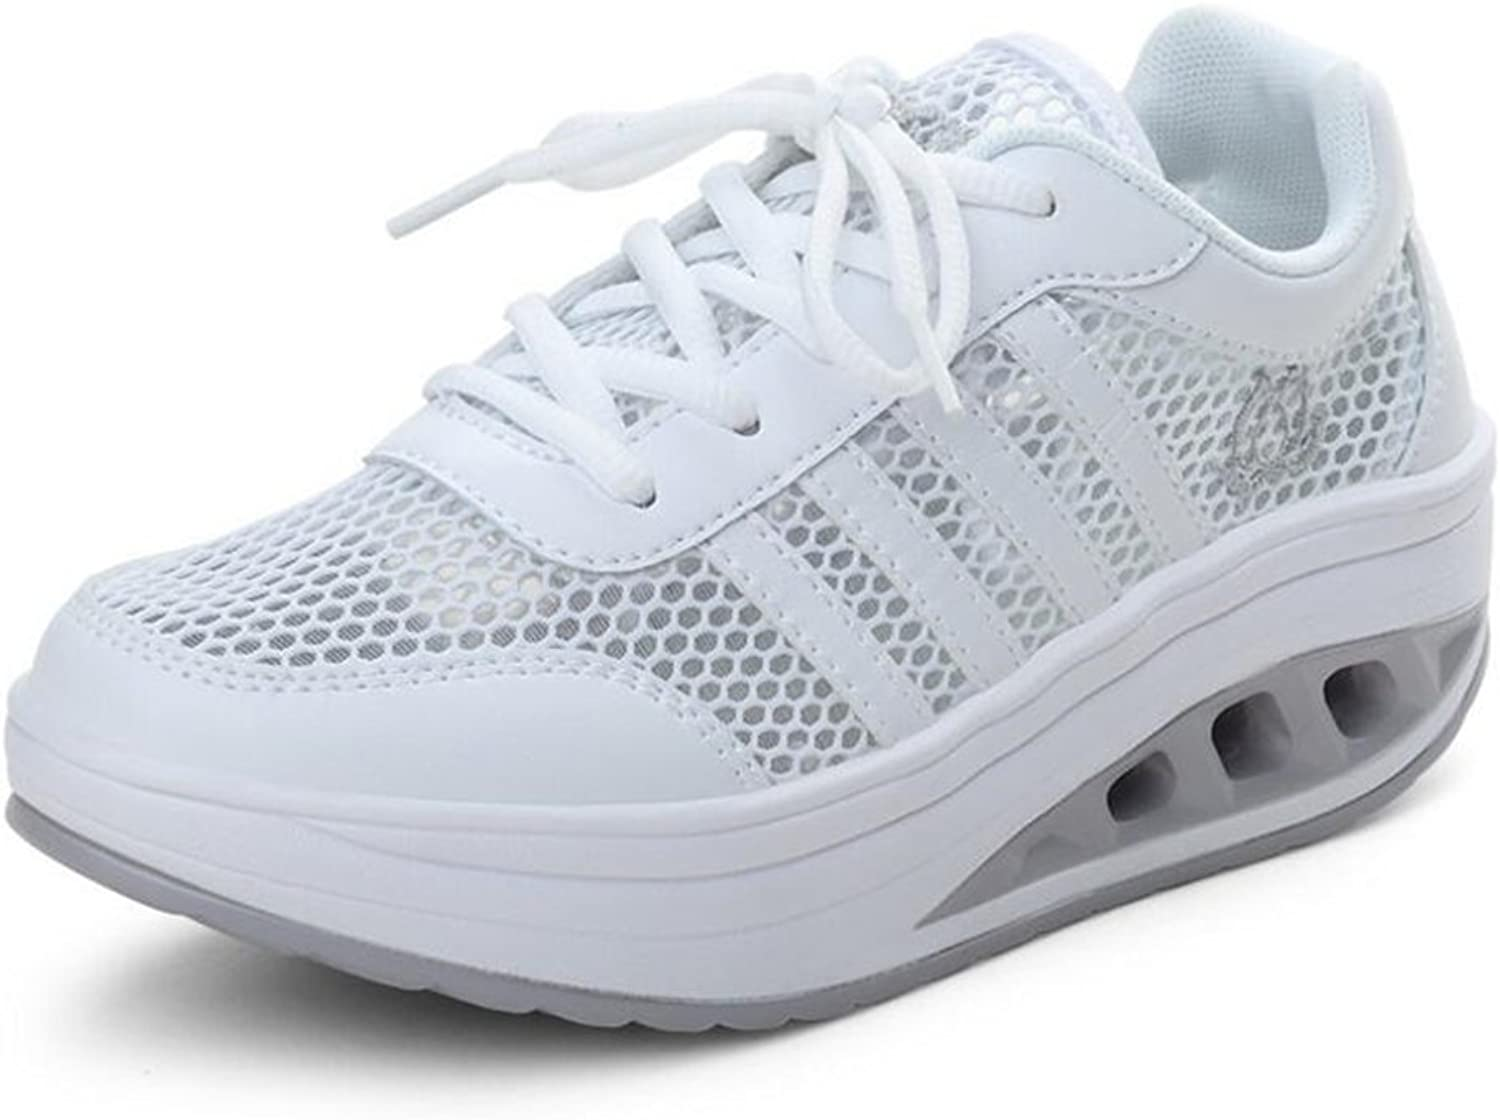 Gusha Non-Slip Sneakers mesh Rocking shoes Breathable Women's shoes Running